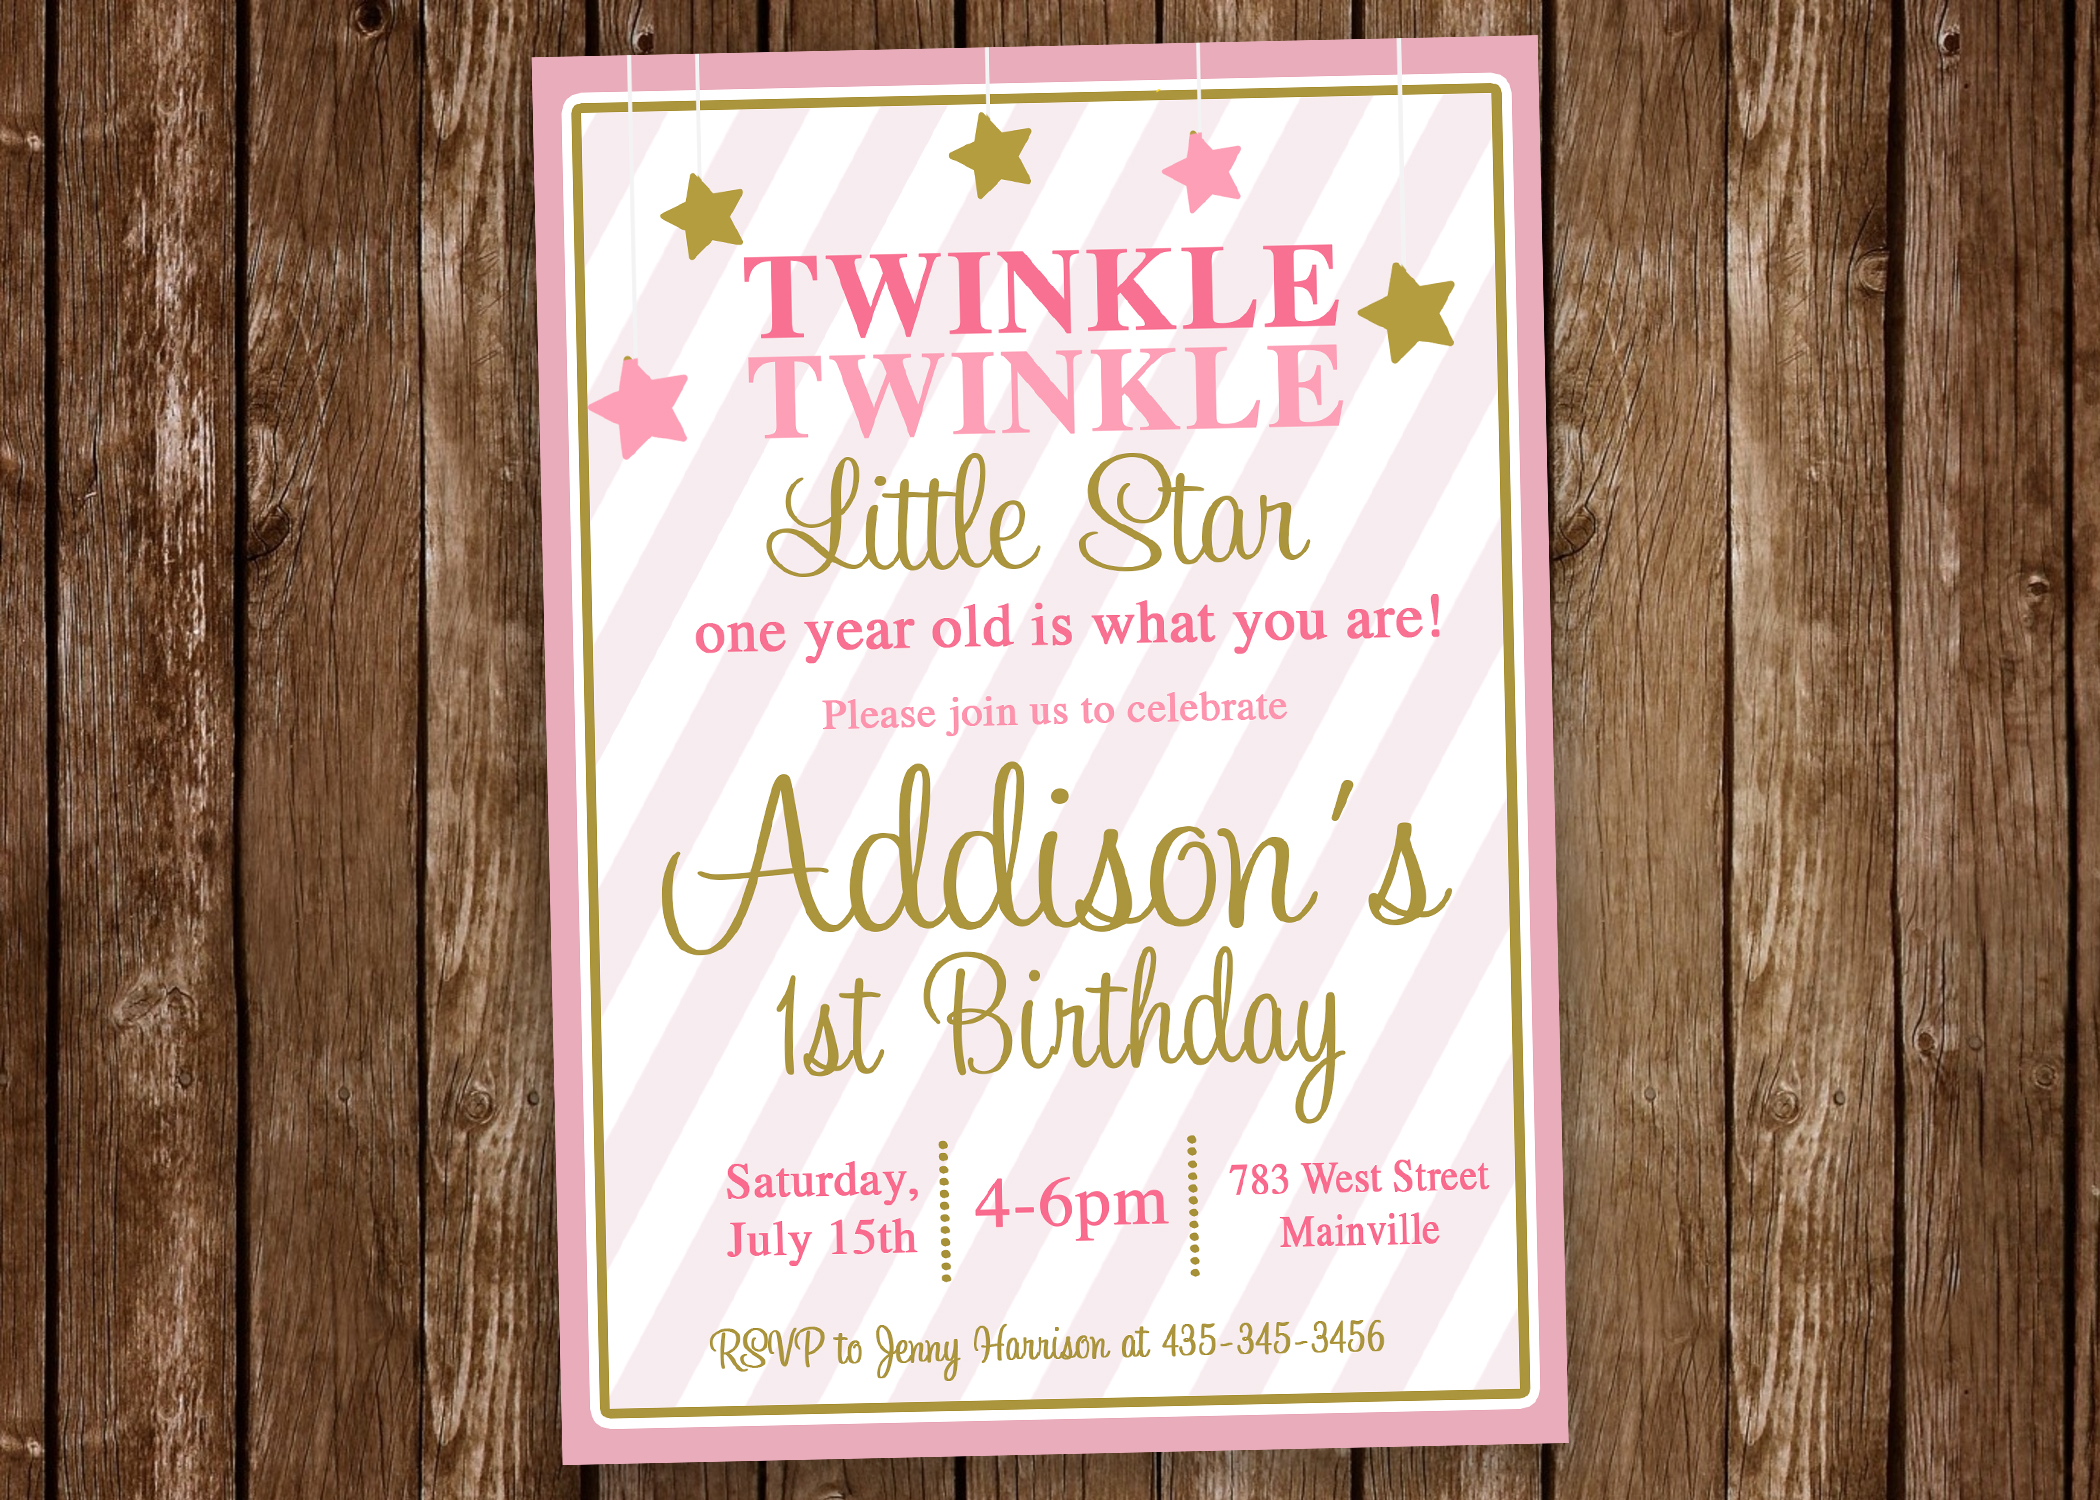 Twinkle 20star 20invitation 20 233 1 Original